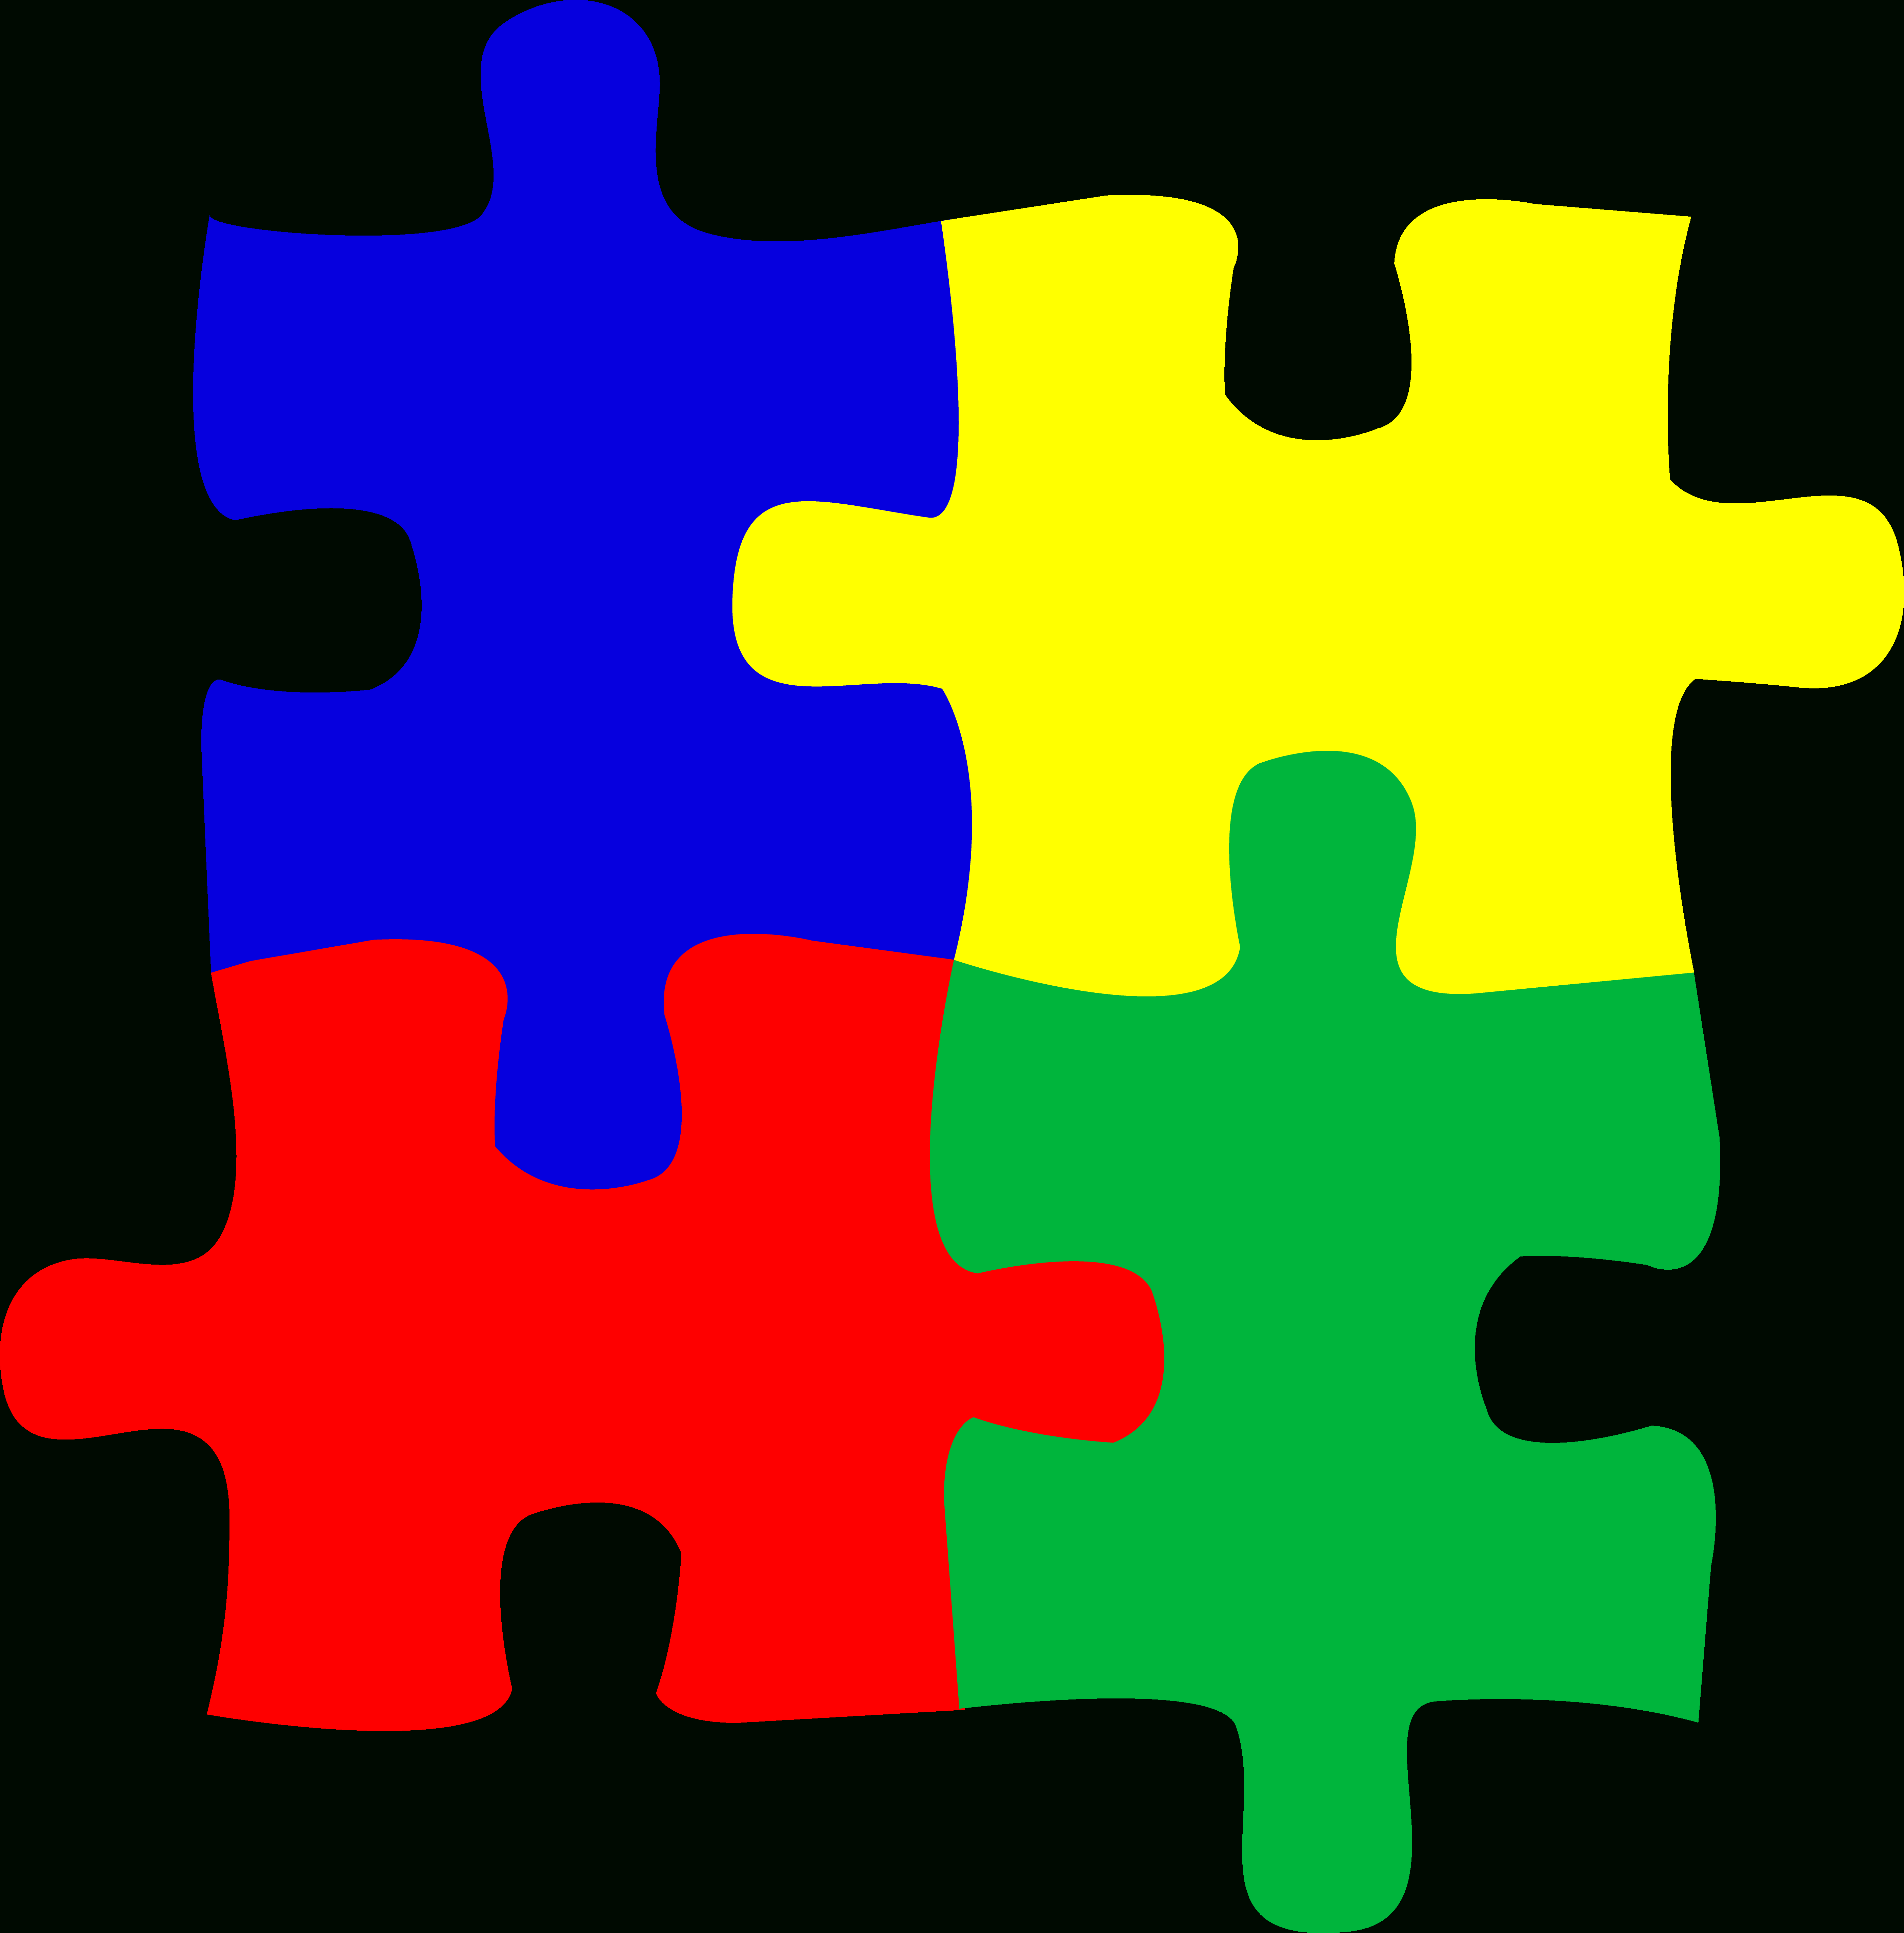 Free Jigsaw Puzzle Clipart, Download Free Clip Art, Free Clip Art On - Printable Logo Puzzle